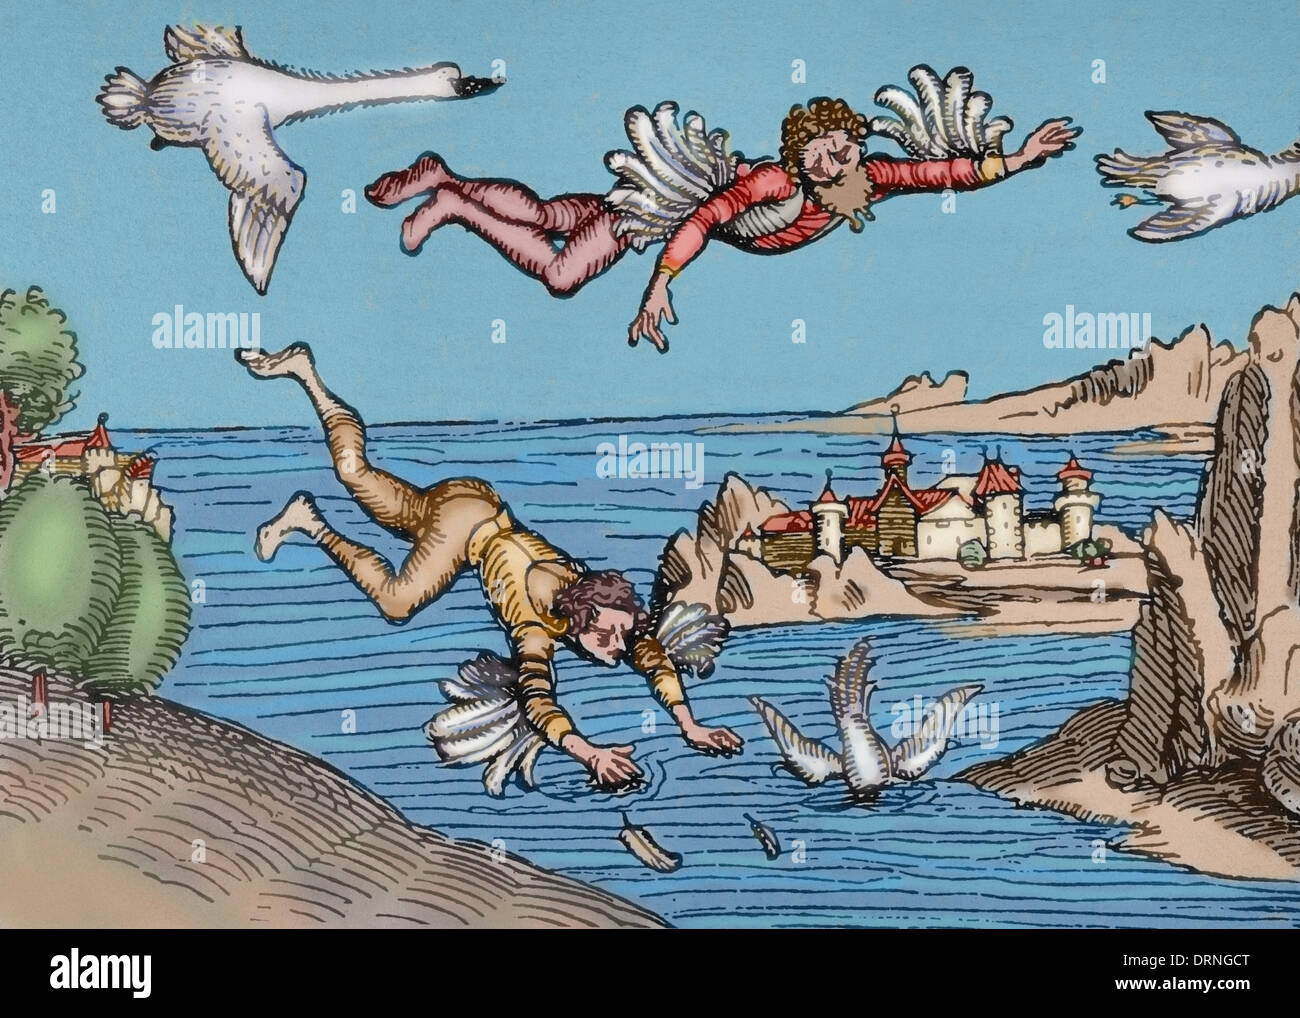 Icarus and his father Daedalus flying. Engraving by Albrecht Durer, 1493. Colored. - Stock Image